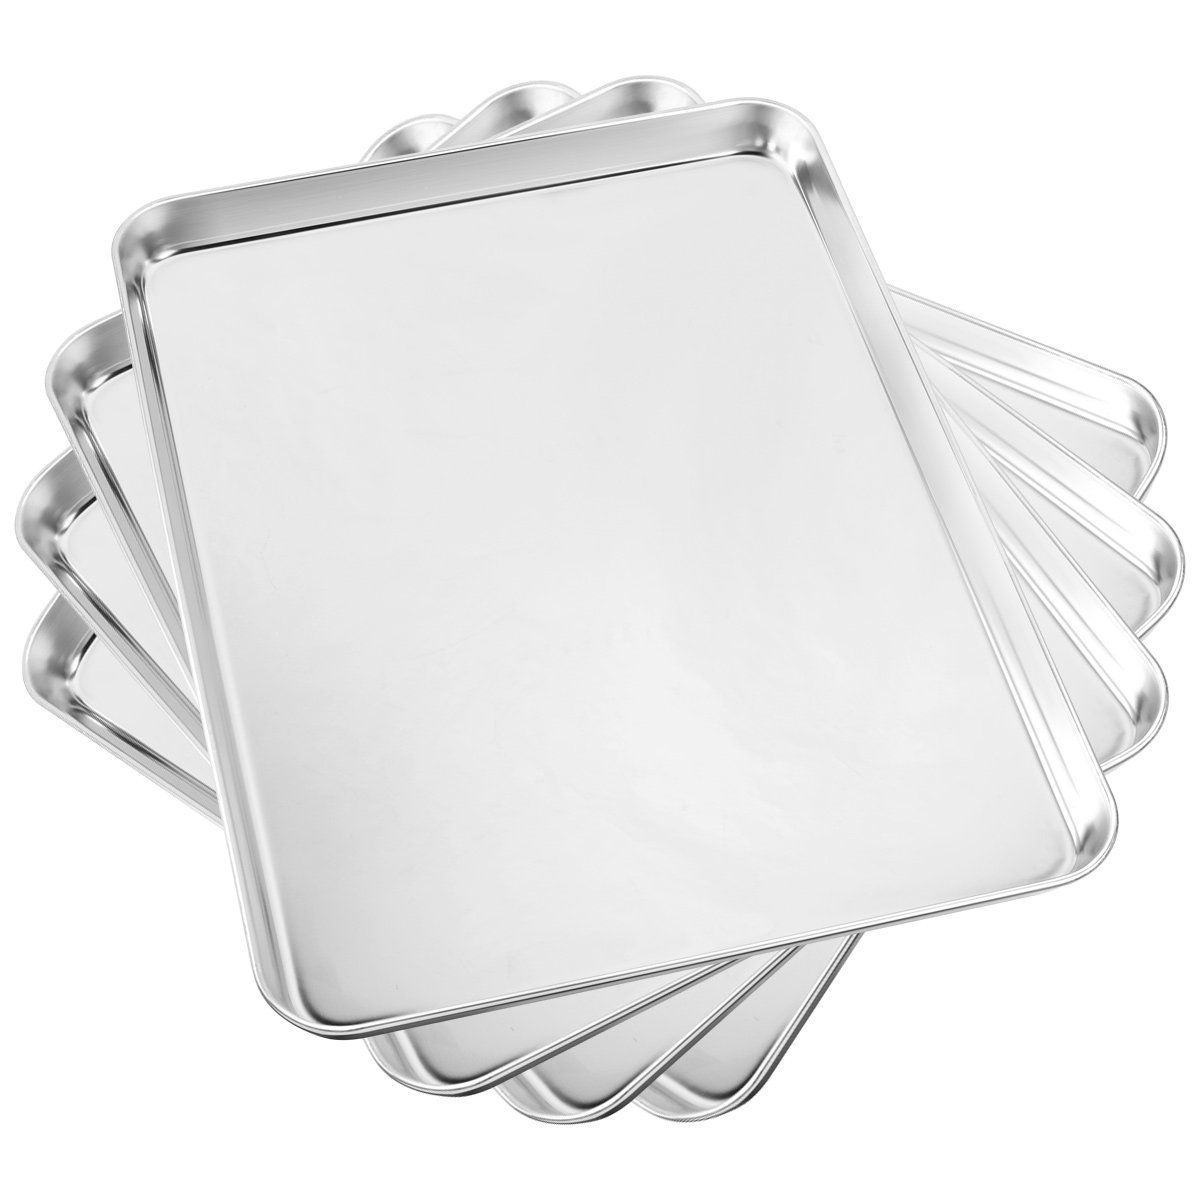 Baking Sheet Set Of 4 Yododo Cookie Sheets Metal Stainless Steel Tray Baking Pans Rectangle Size 16 X 12 X 1 Inch Mirror P Easy Cleaning Rust Free Stainless